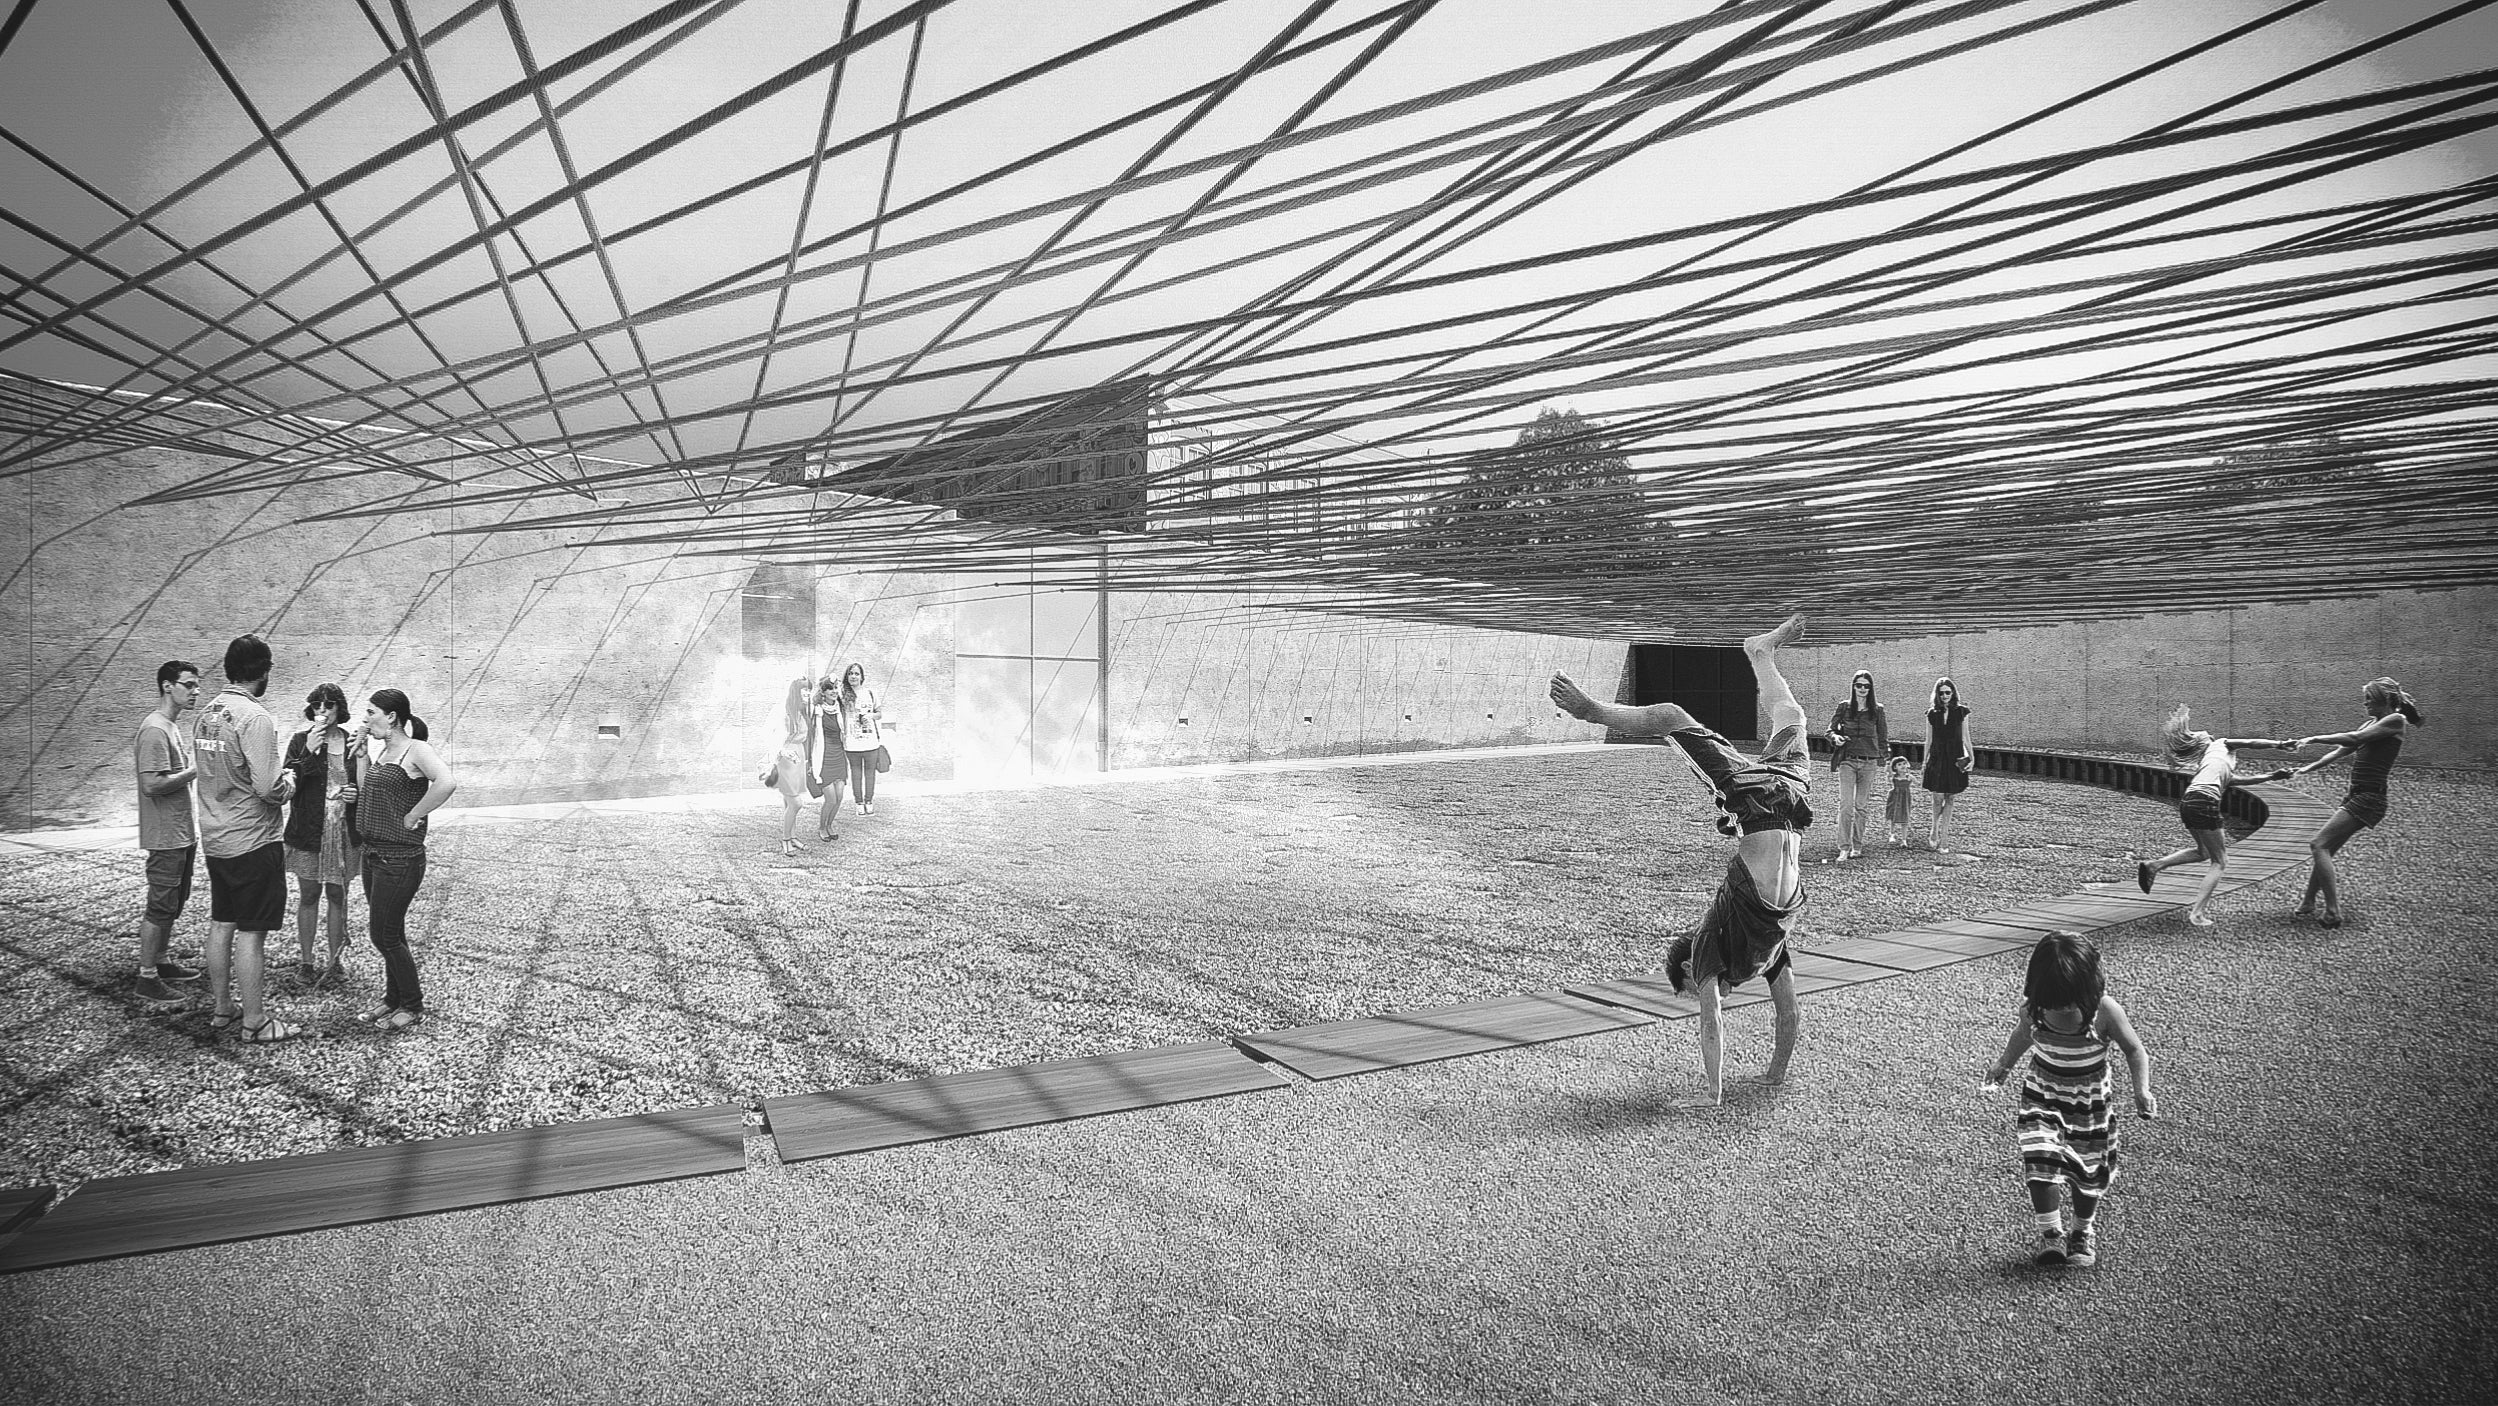 Designers Will Knit a Neon Rope Canopy Over MoMA's Concrete Courtyard This Summer